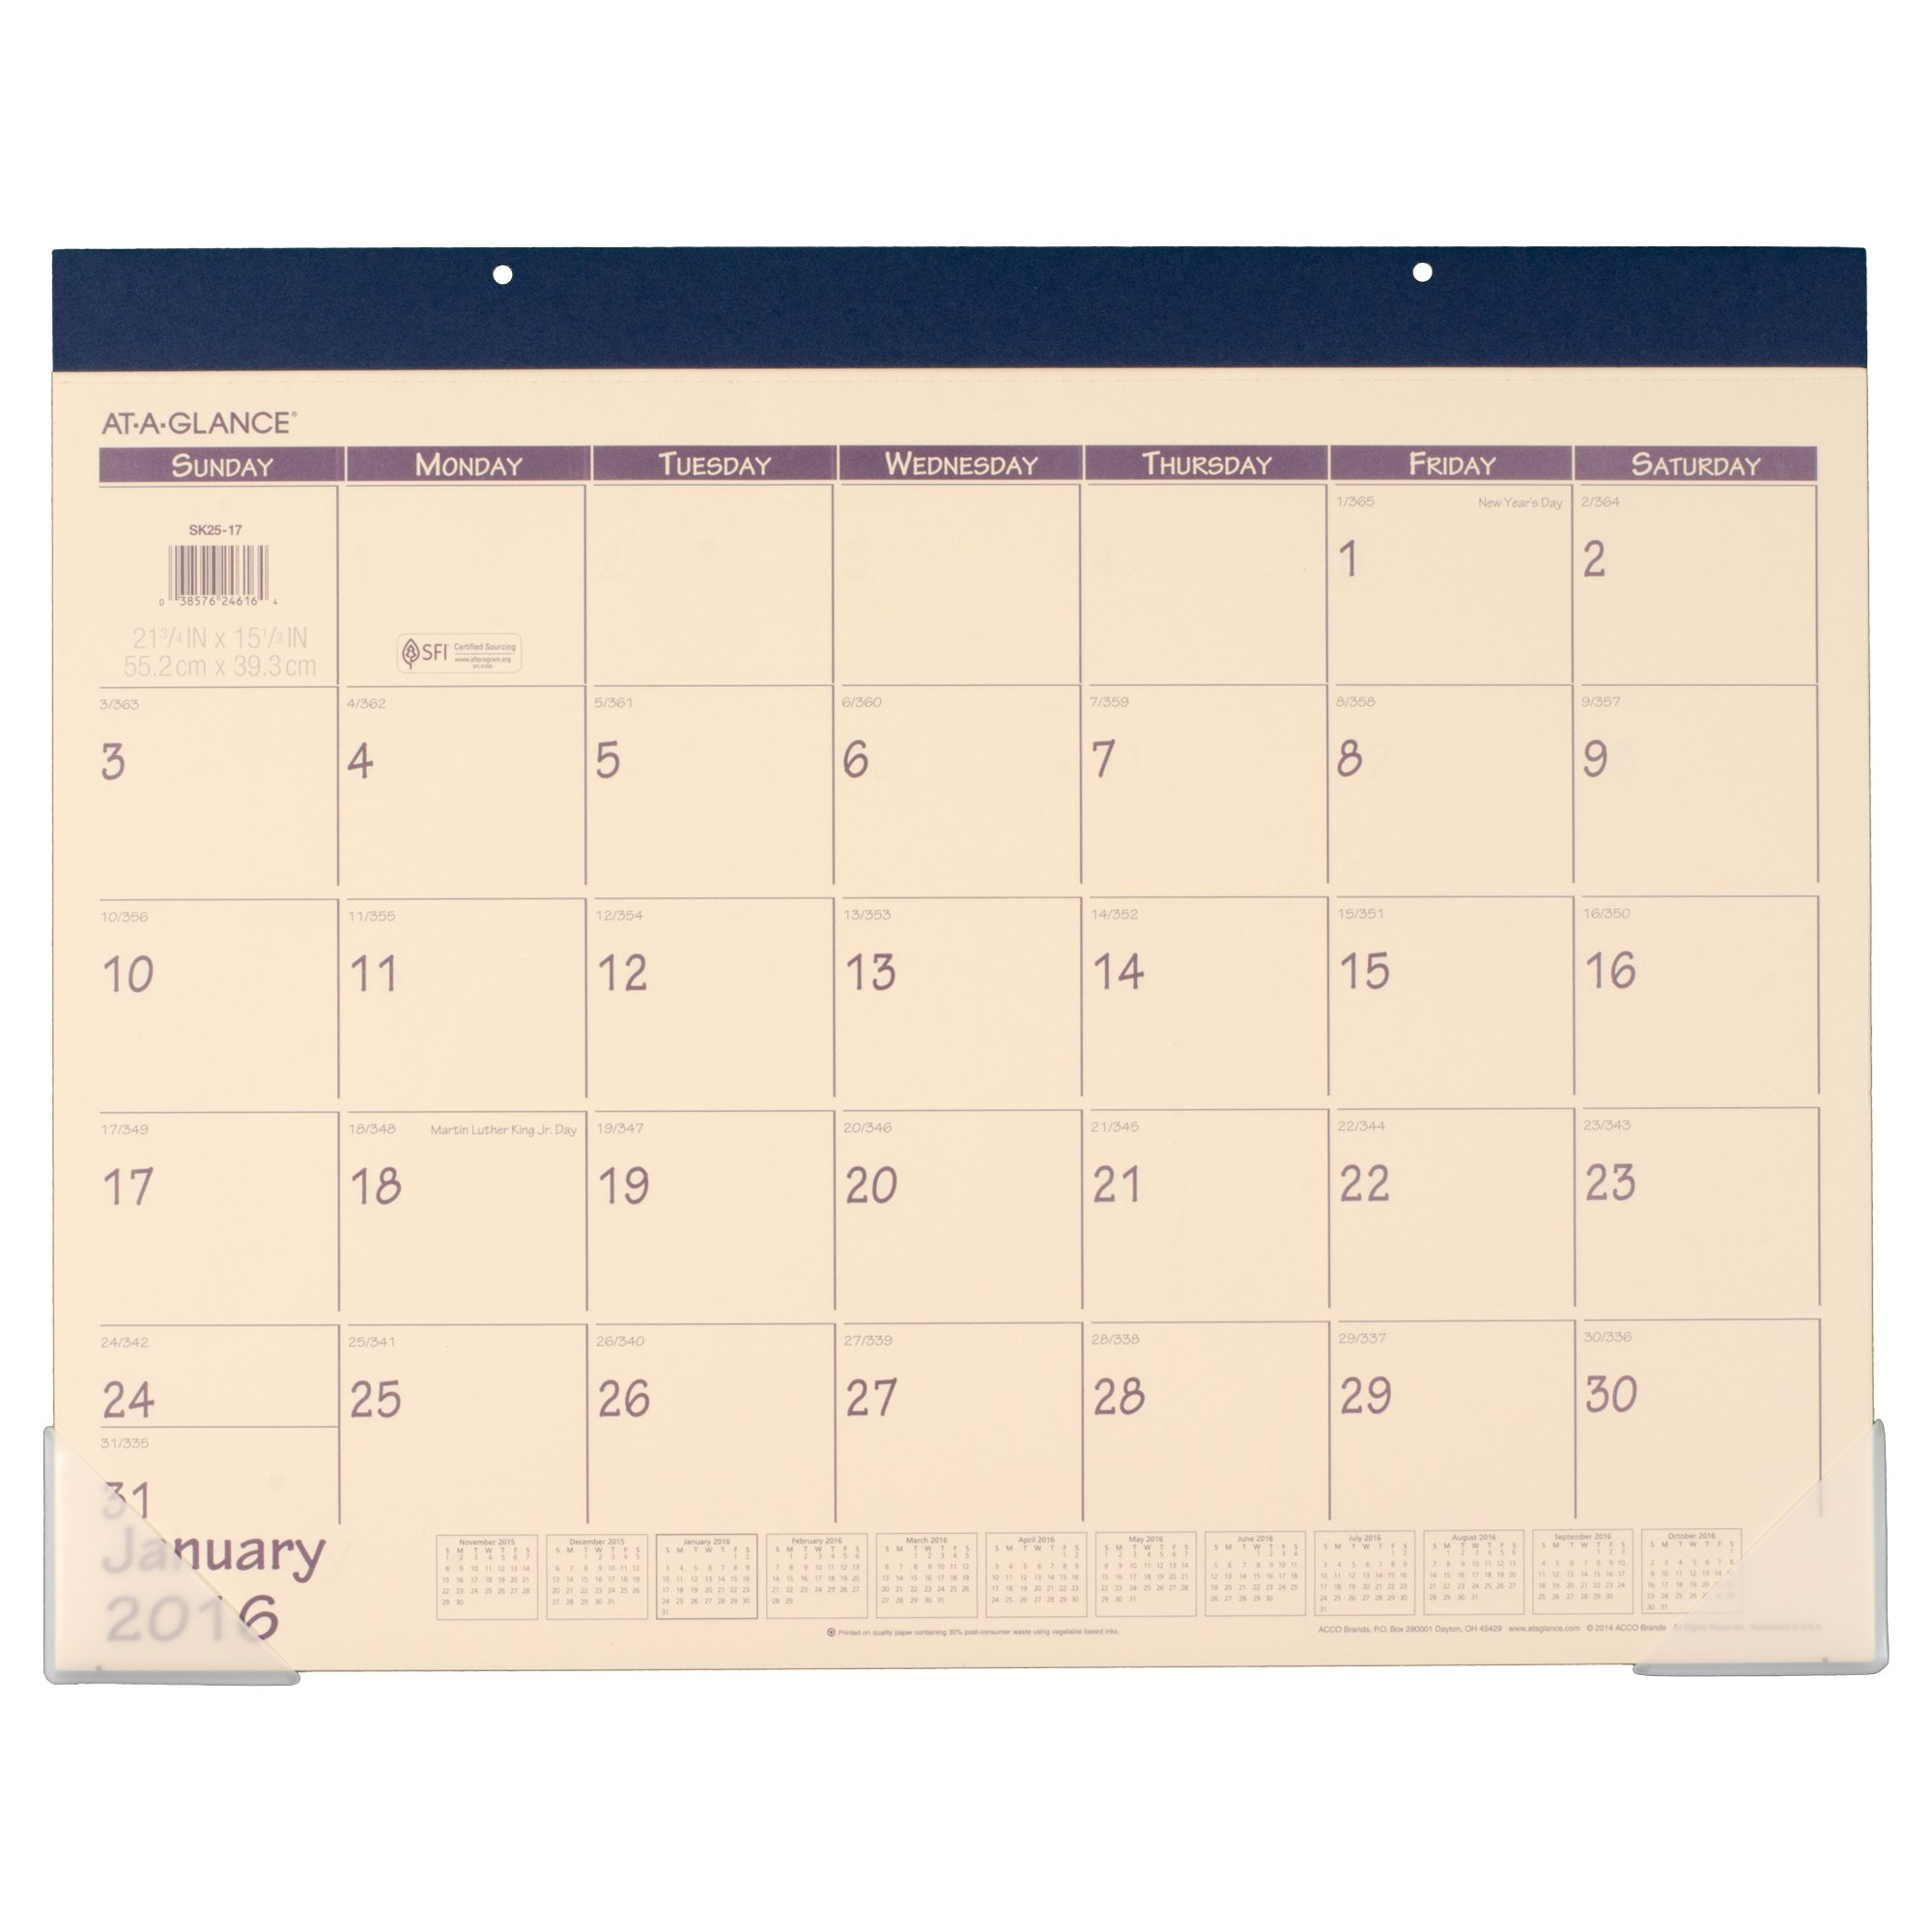 AT-A-GLANCE Desk Pad Calendar 2016, 12 Months, 21-3/4 x 15-1/2 Inches, Fashion Color Blue (SK25-17)